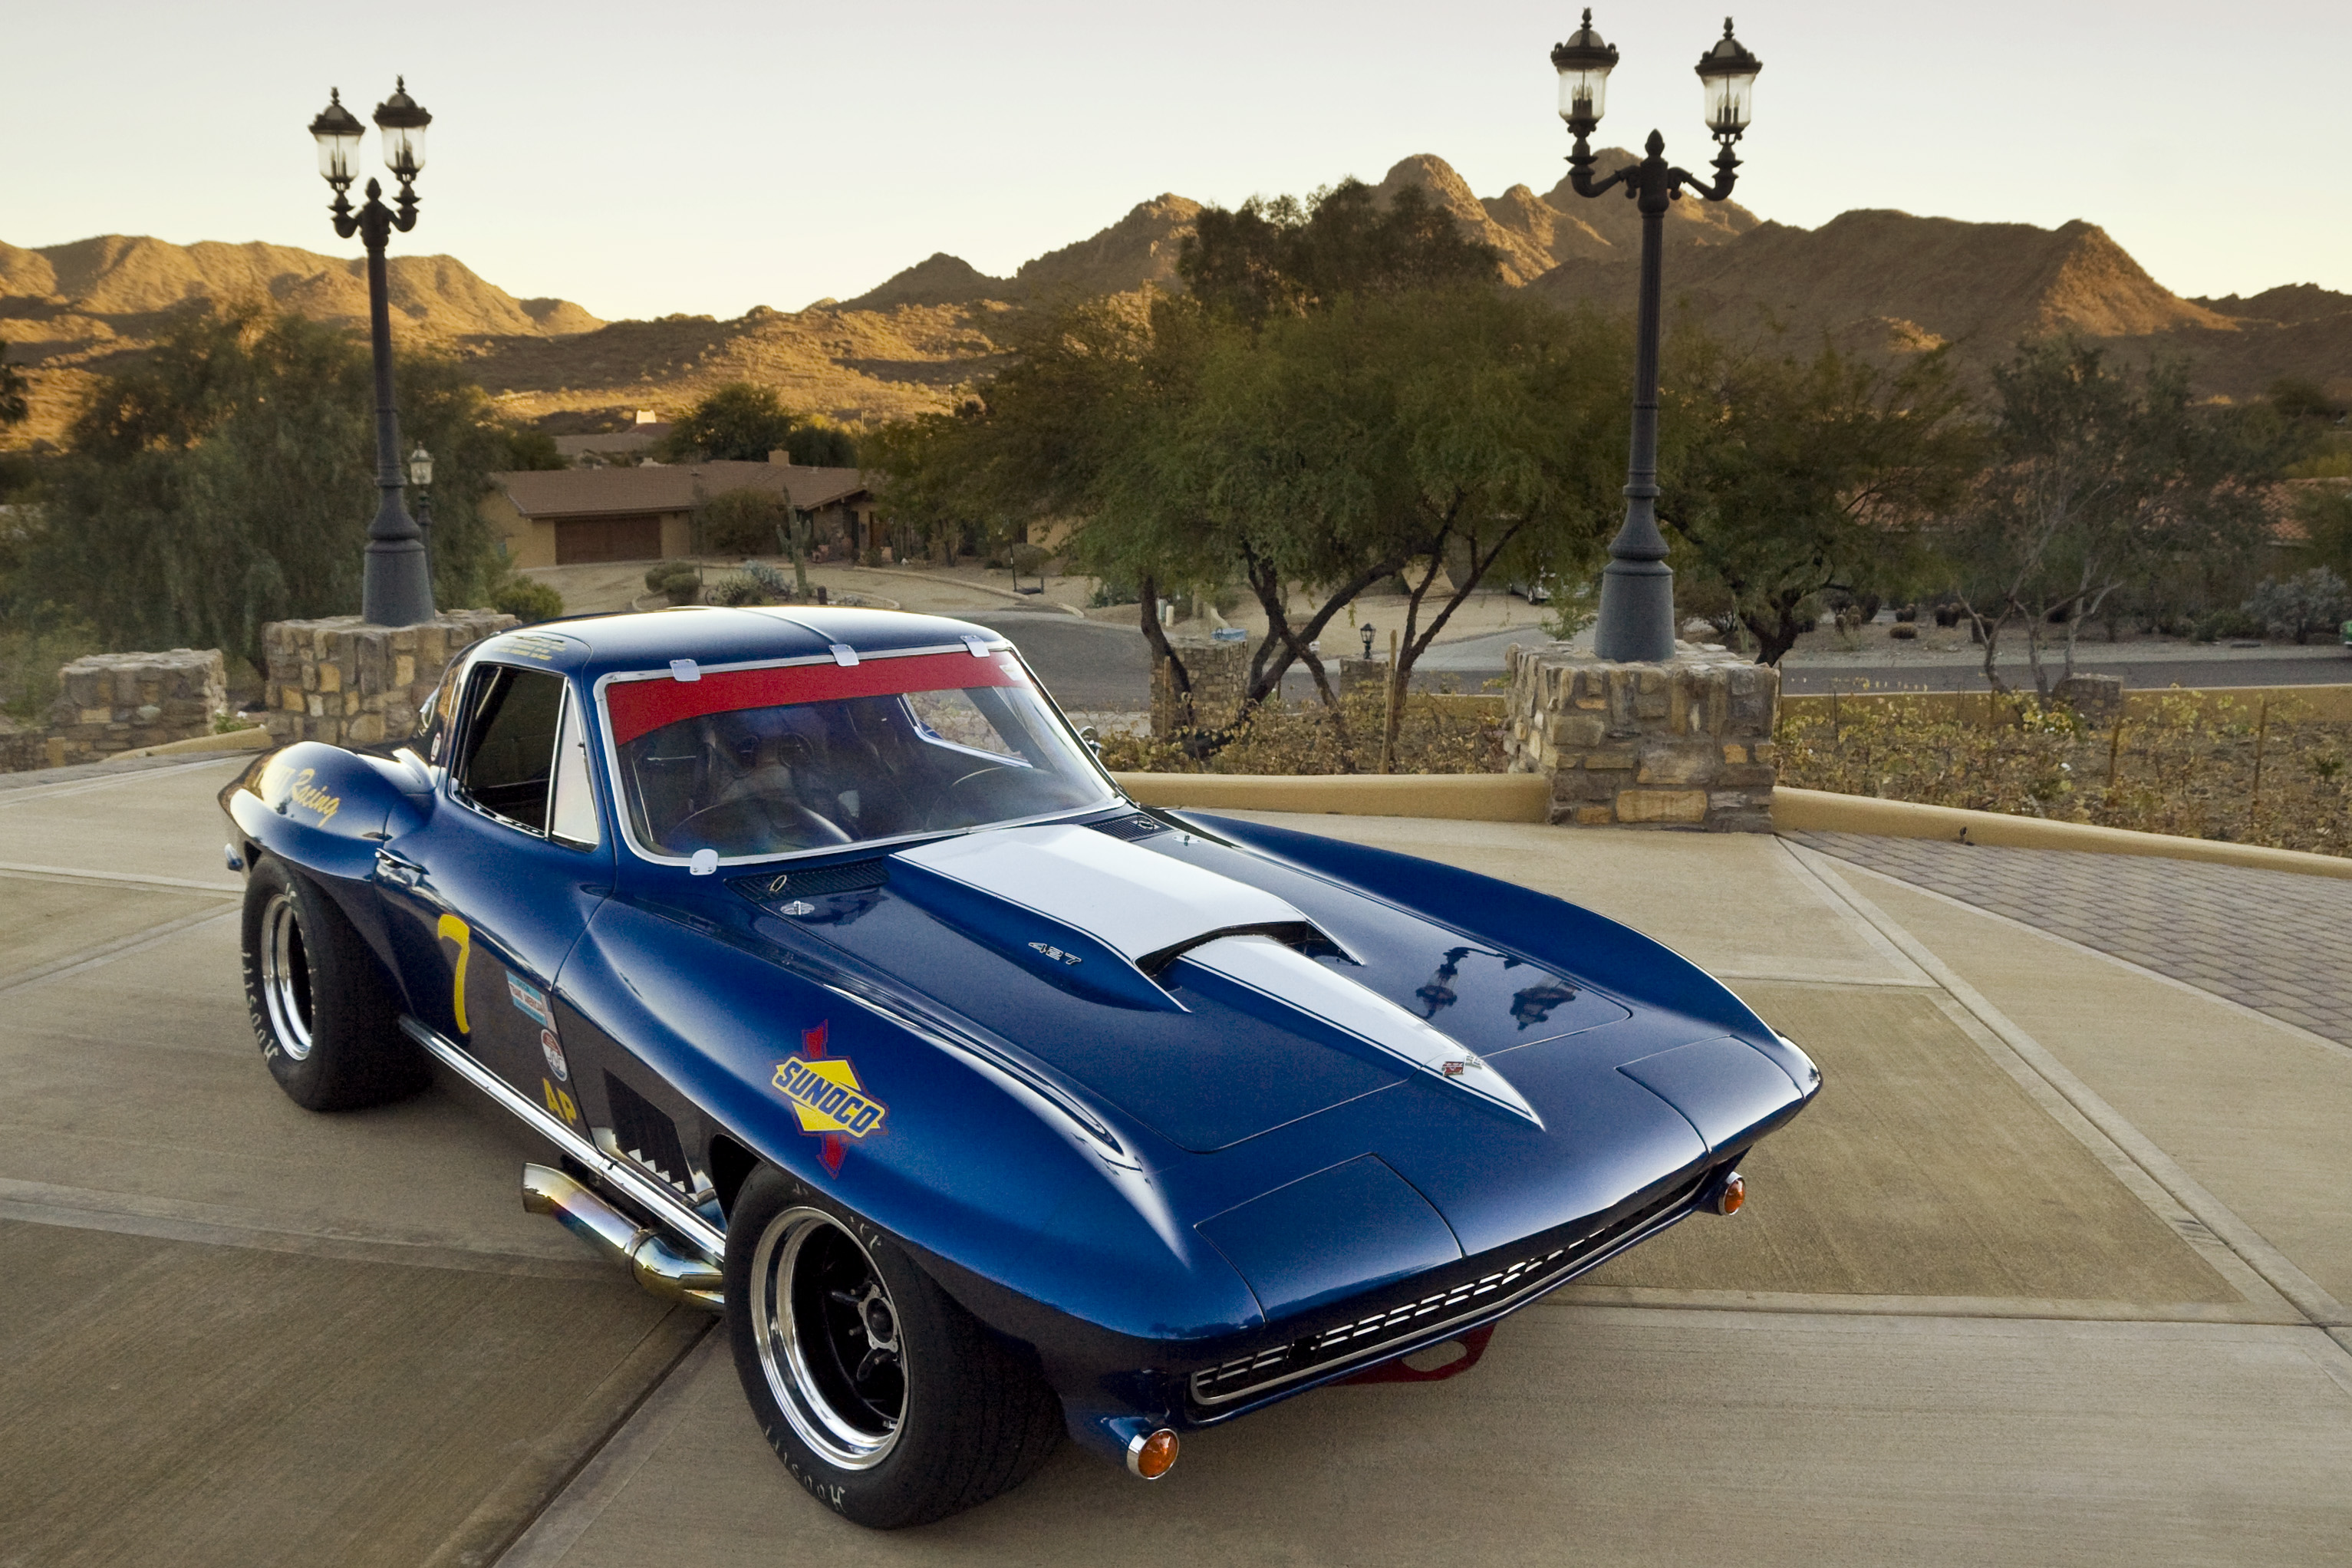 Corvette historic racer